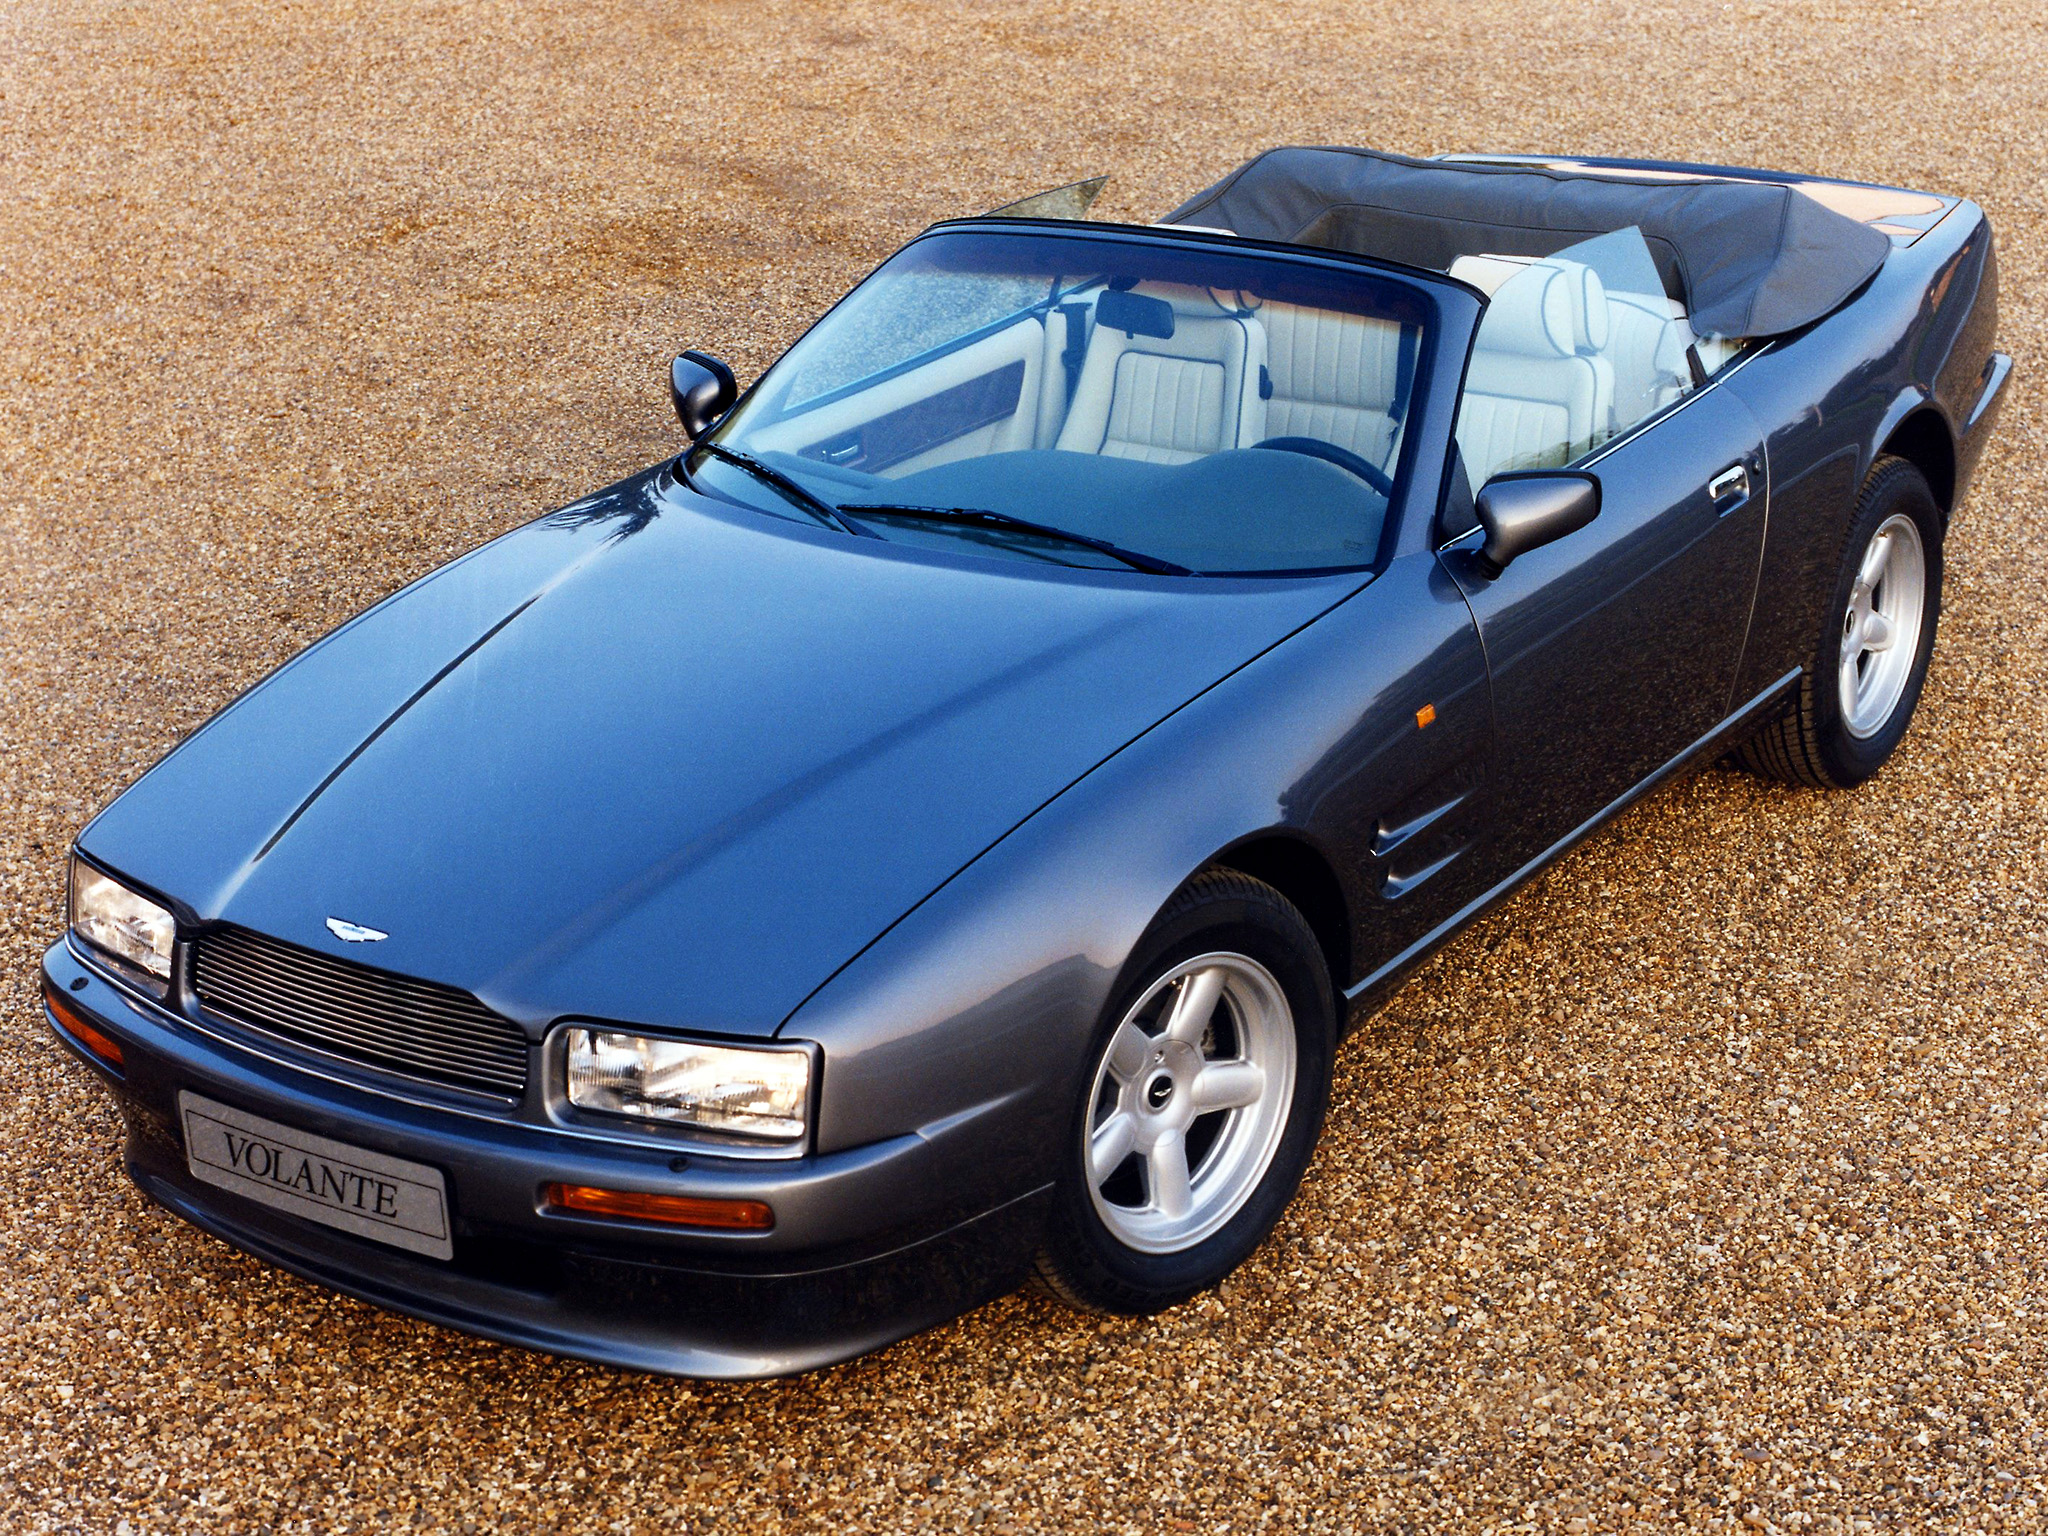 aston martin virage volante 1992 images